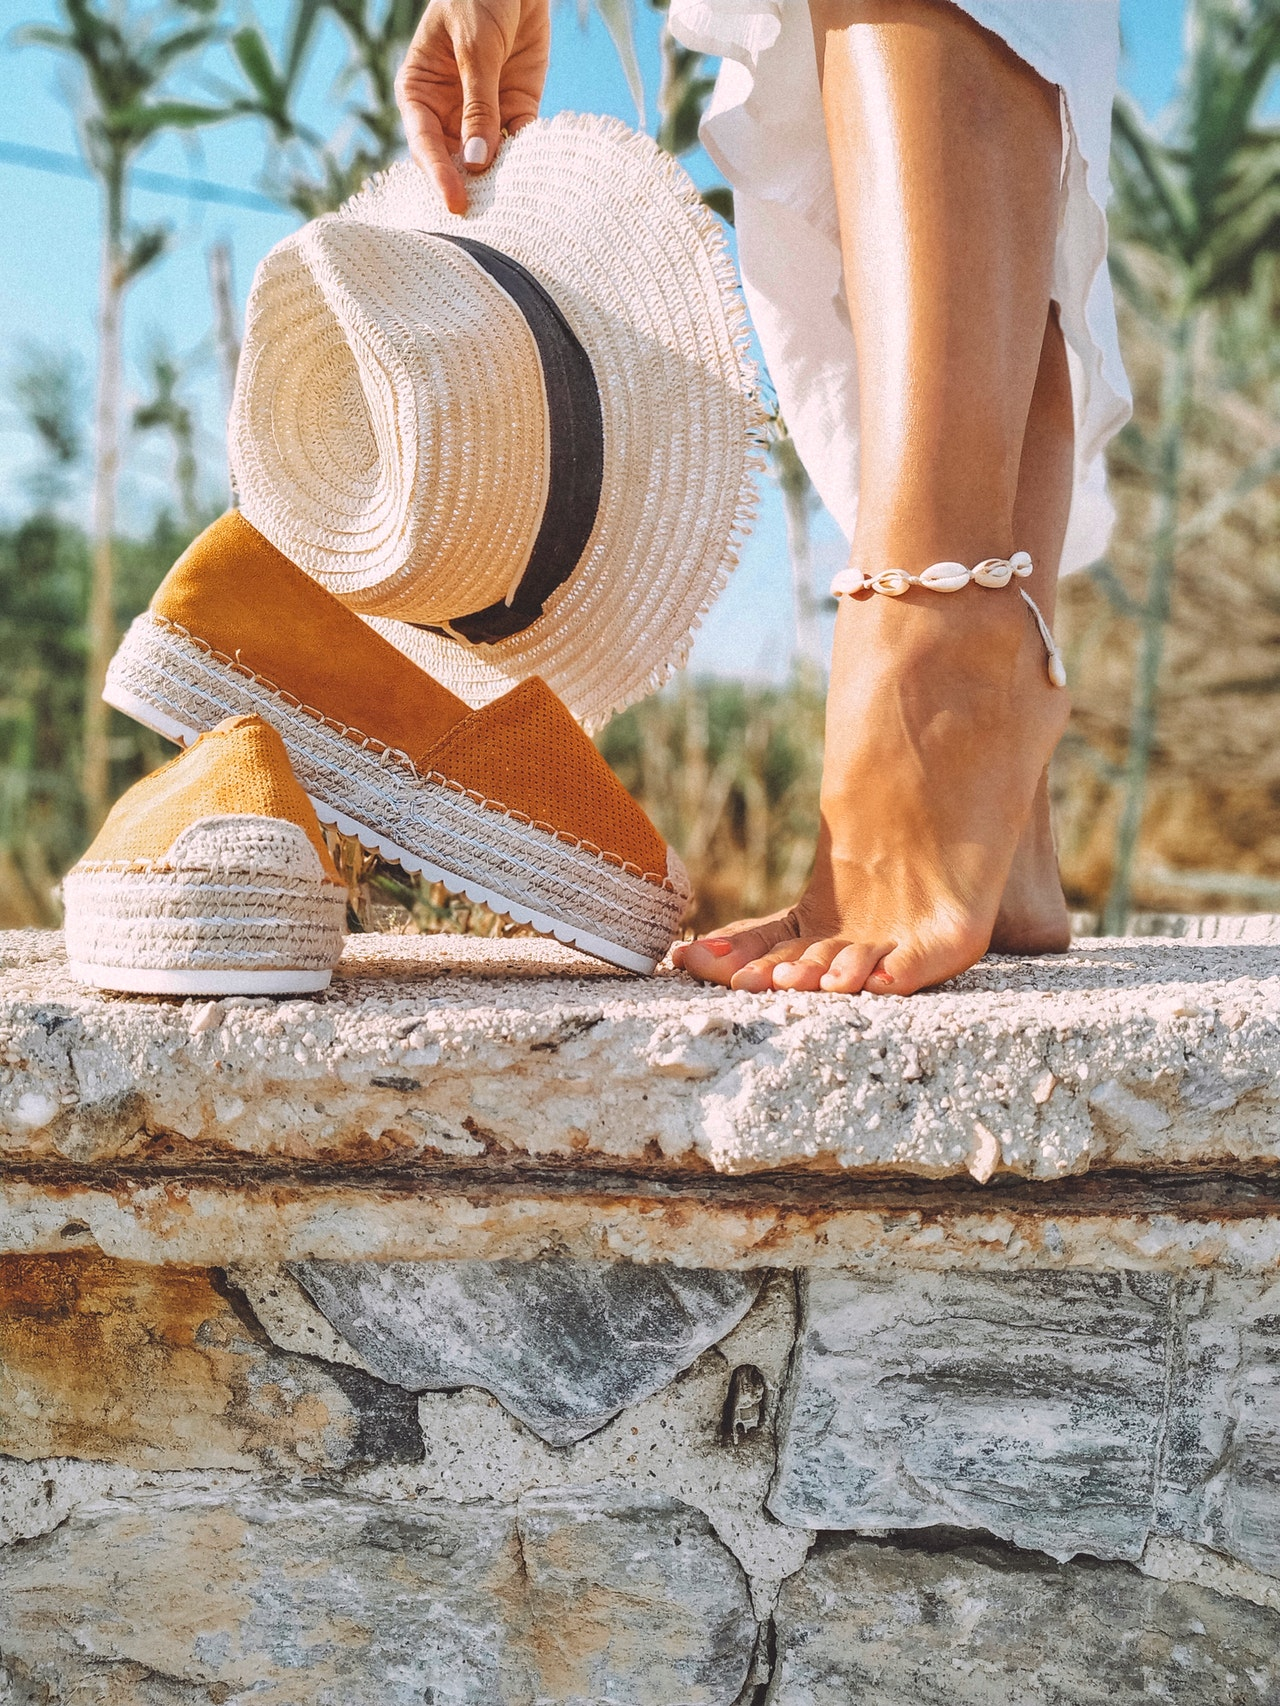 Anklet Styles for Your Next Summer Vacation